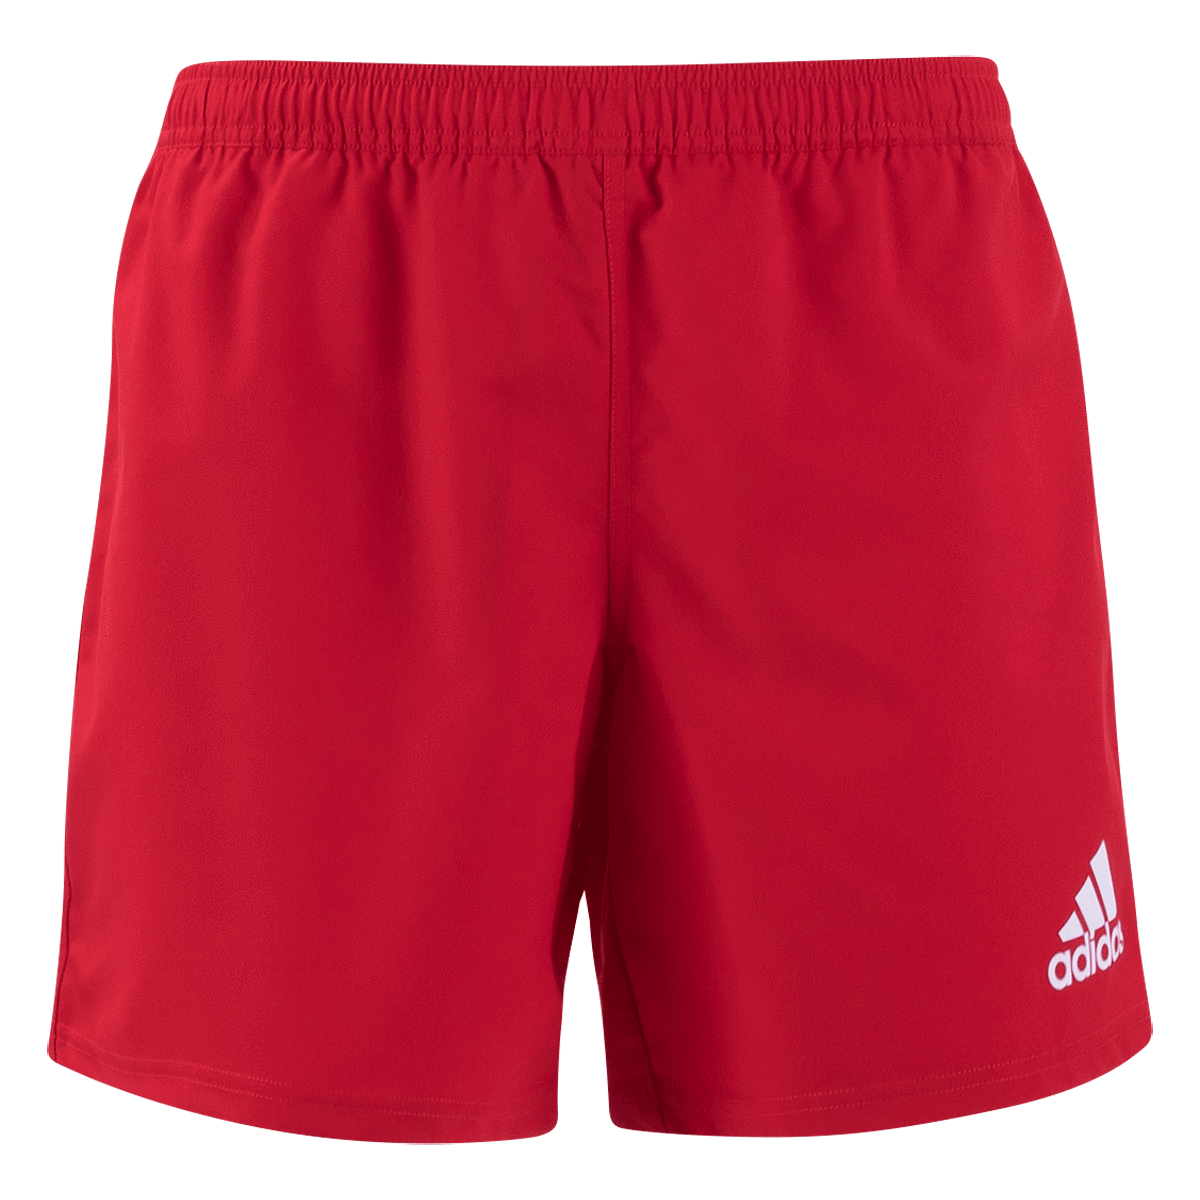 Adidas 19 Red/White 3 Stripe Rugby Shorts Front View